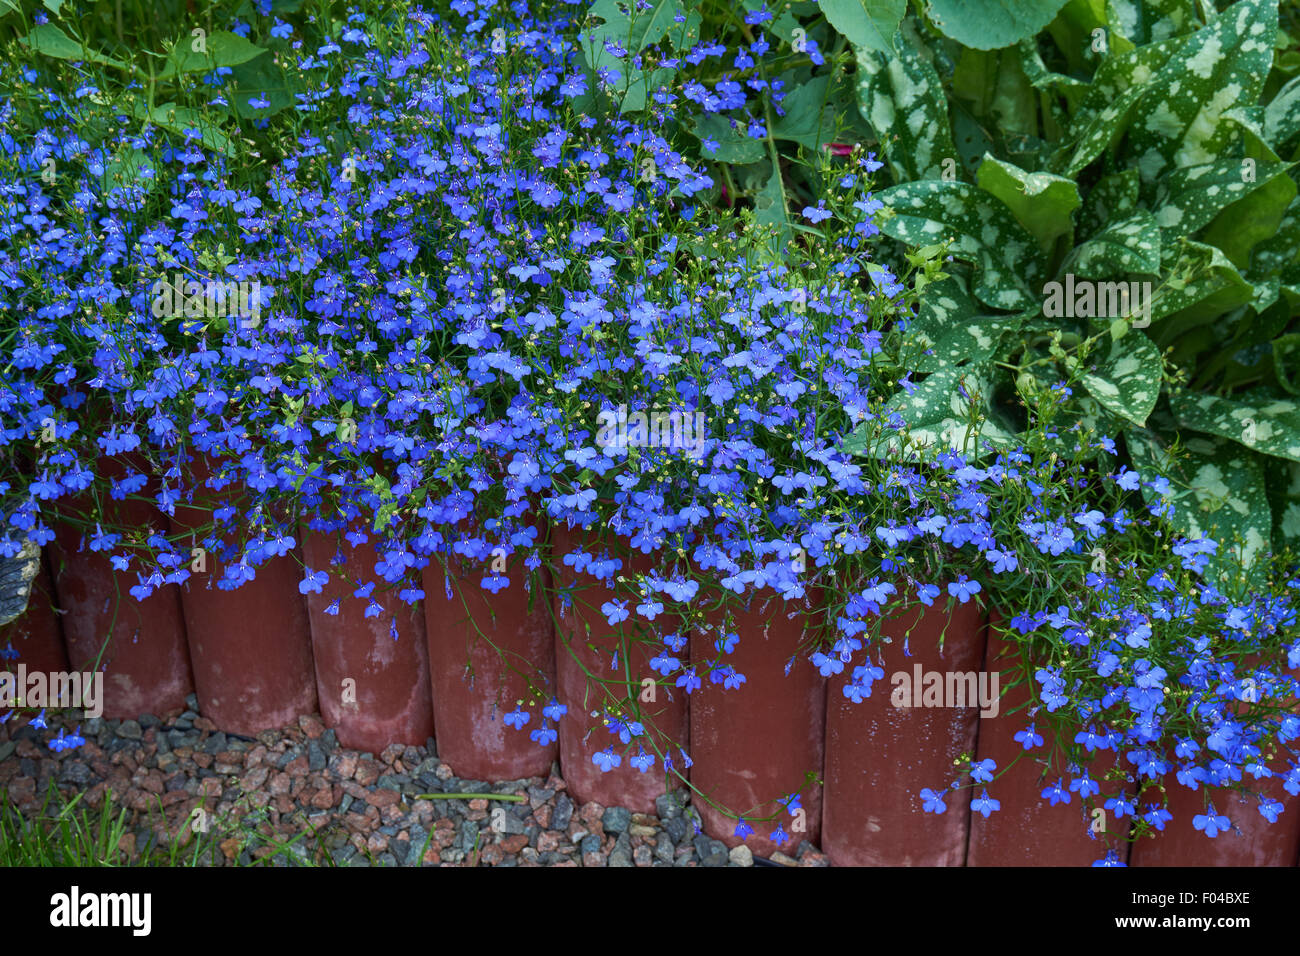 Lobelia Stock Photos Lobelia Stock Images Alamy